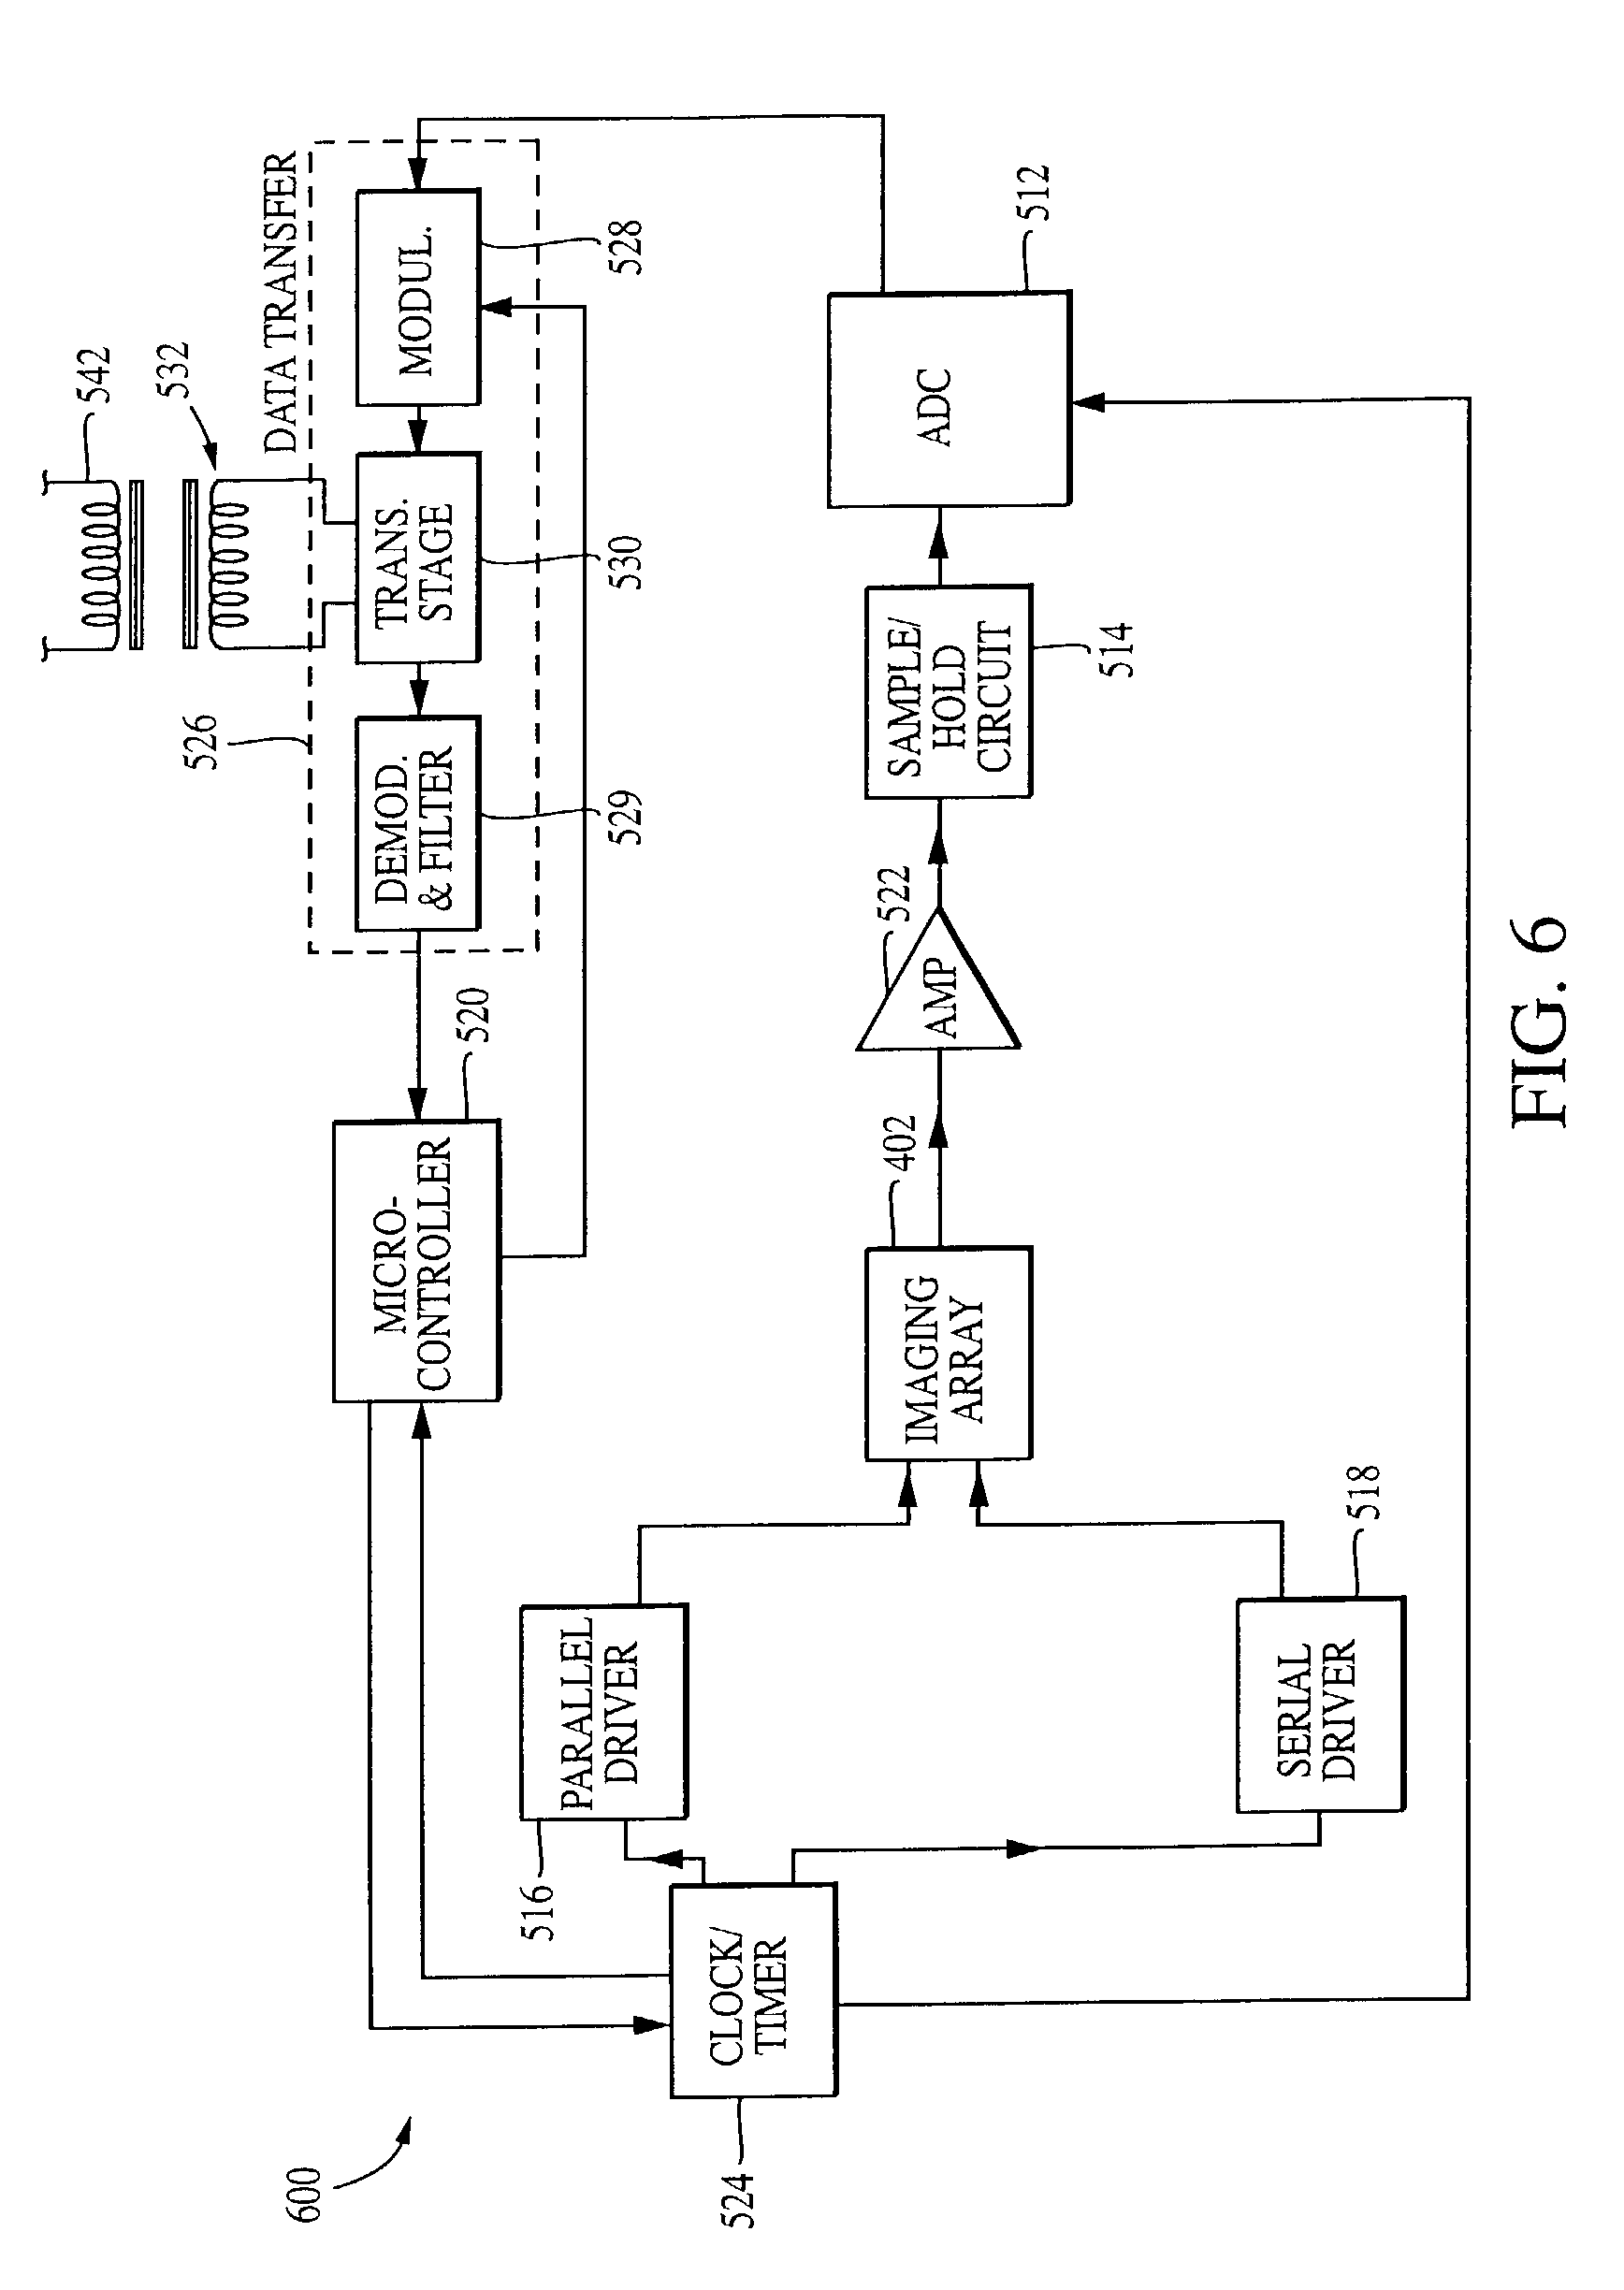 Patent Us 7914442 B1 Likewise Nimh Battery Charger Circuit Diagram On Cell